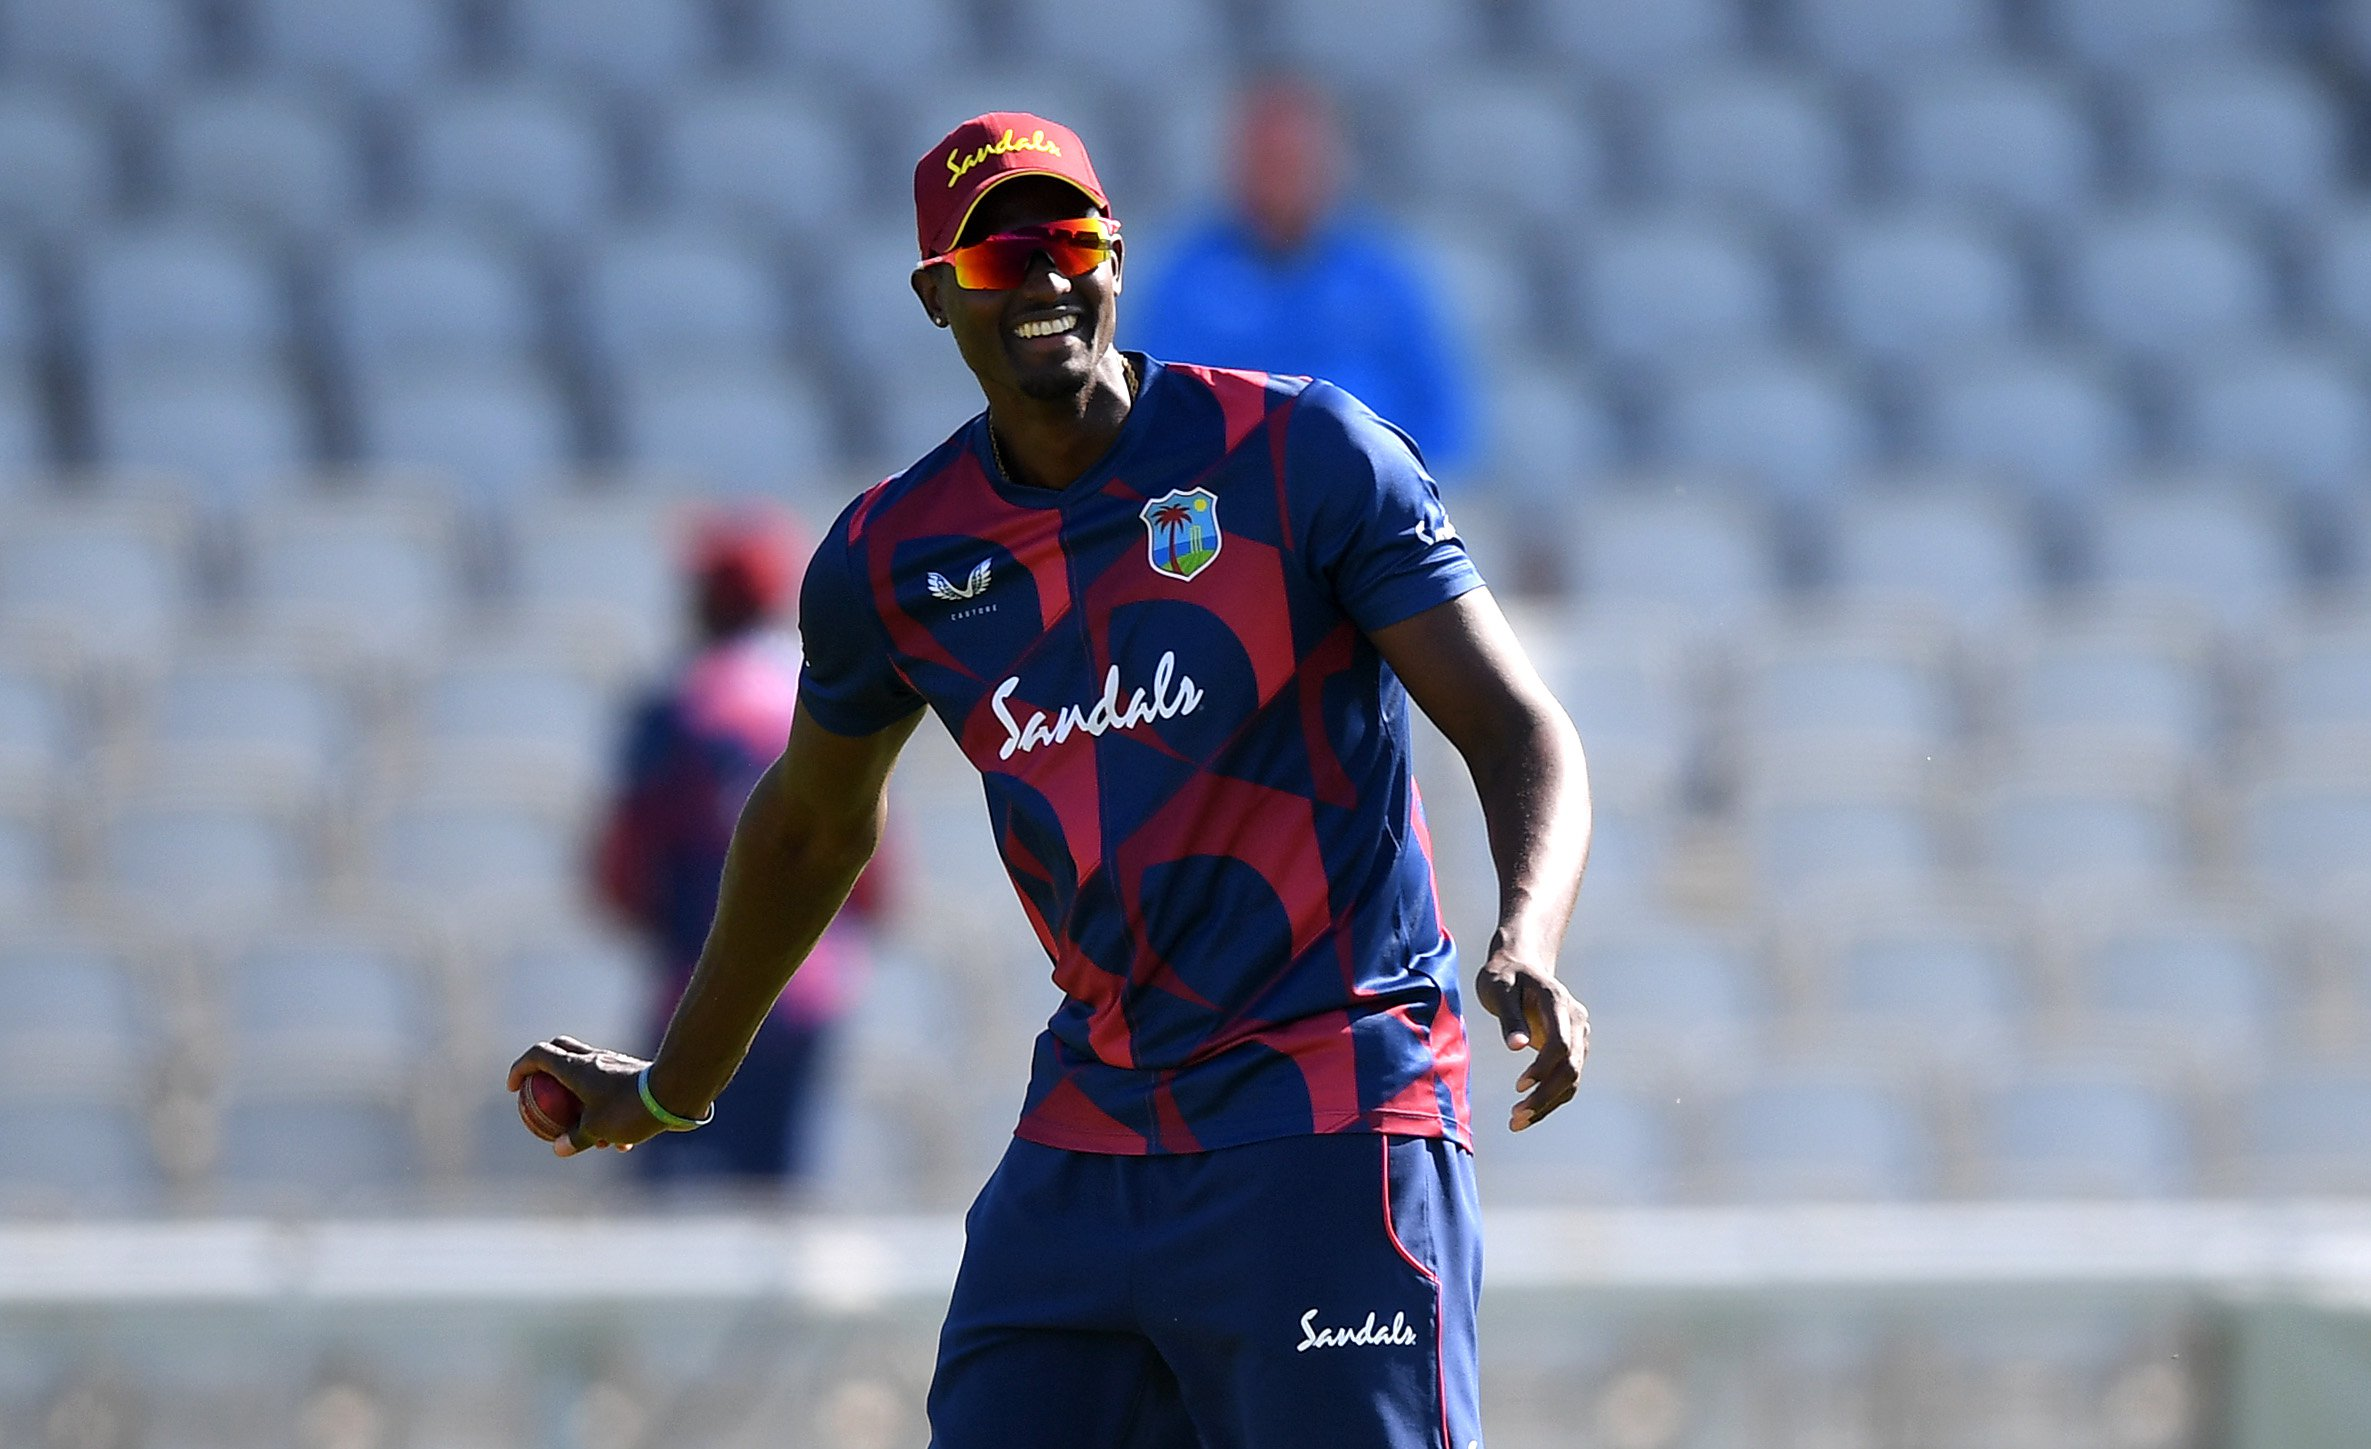 Jason Holder  - Warm Up Day 1.jpg